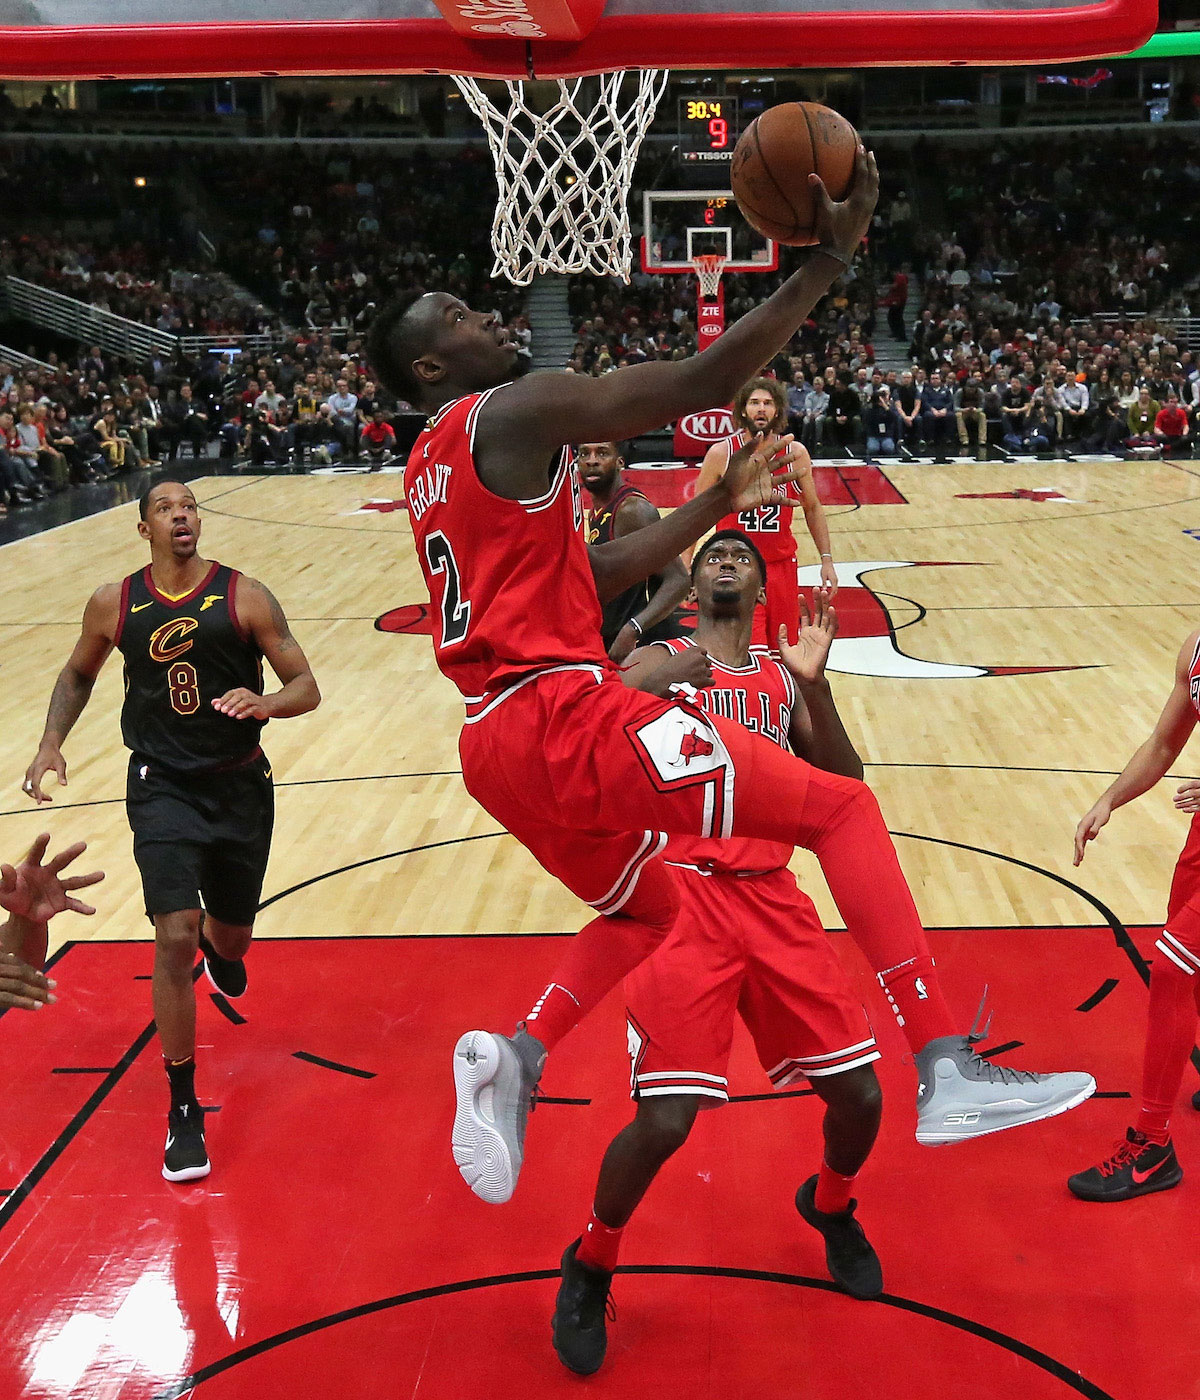 Jerian Grant #2 of the Chicago Bulls puts up a shot against the Cleveland Cavaliers at the United Center on December 4, 2017 in Chicago, Illinois.